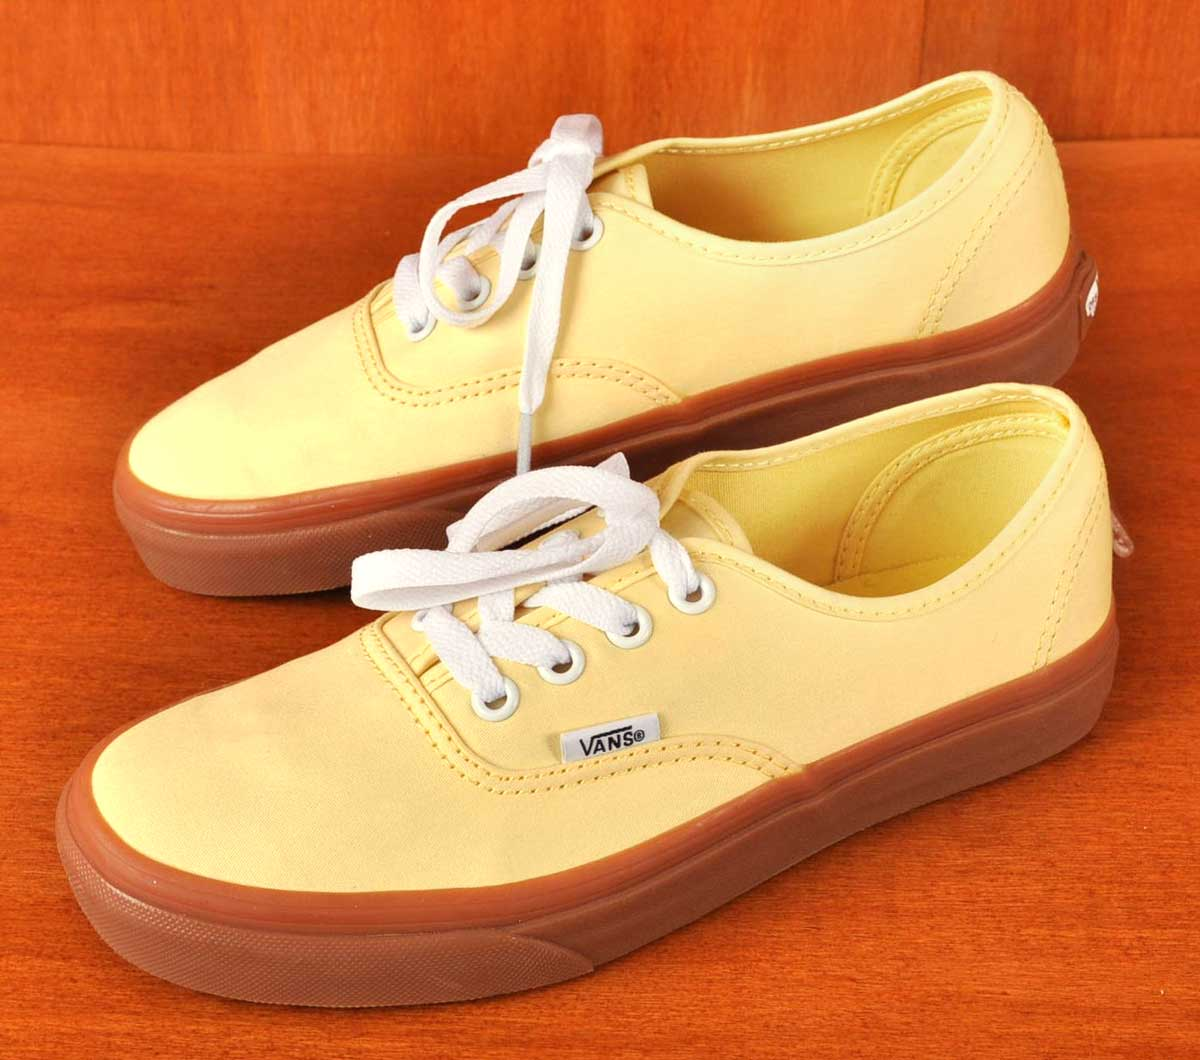 VANS vans   Authentic authentic   deckthews   banana yellow   gum sole  textile inspection 1778319f6